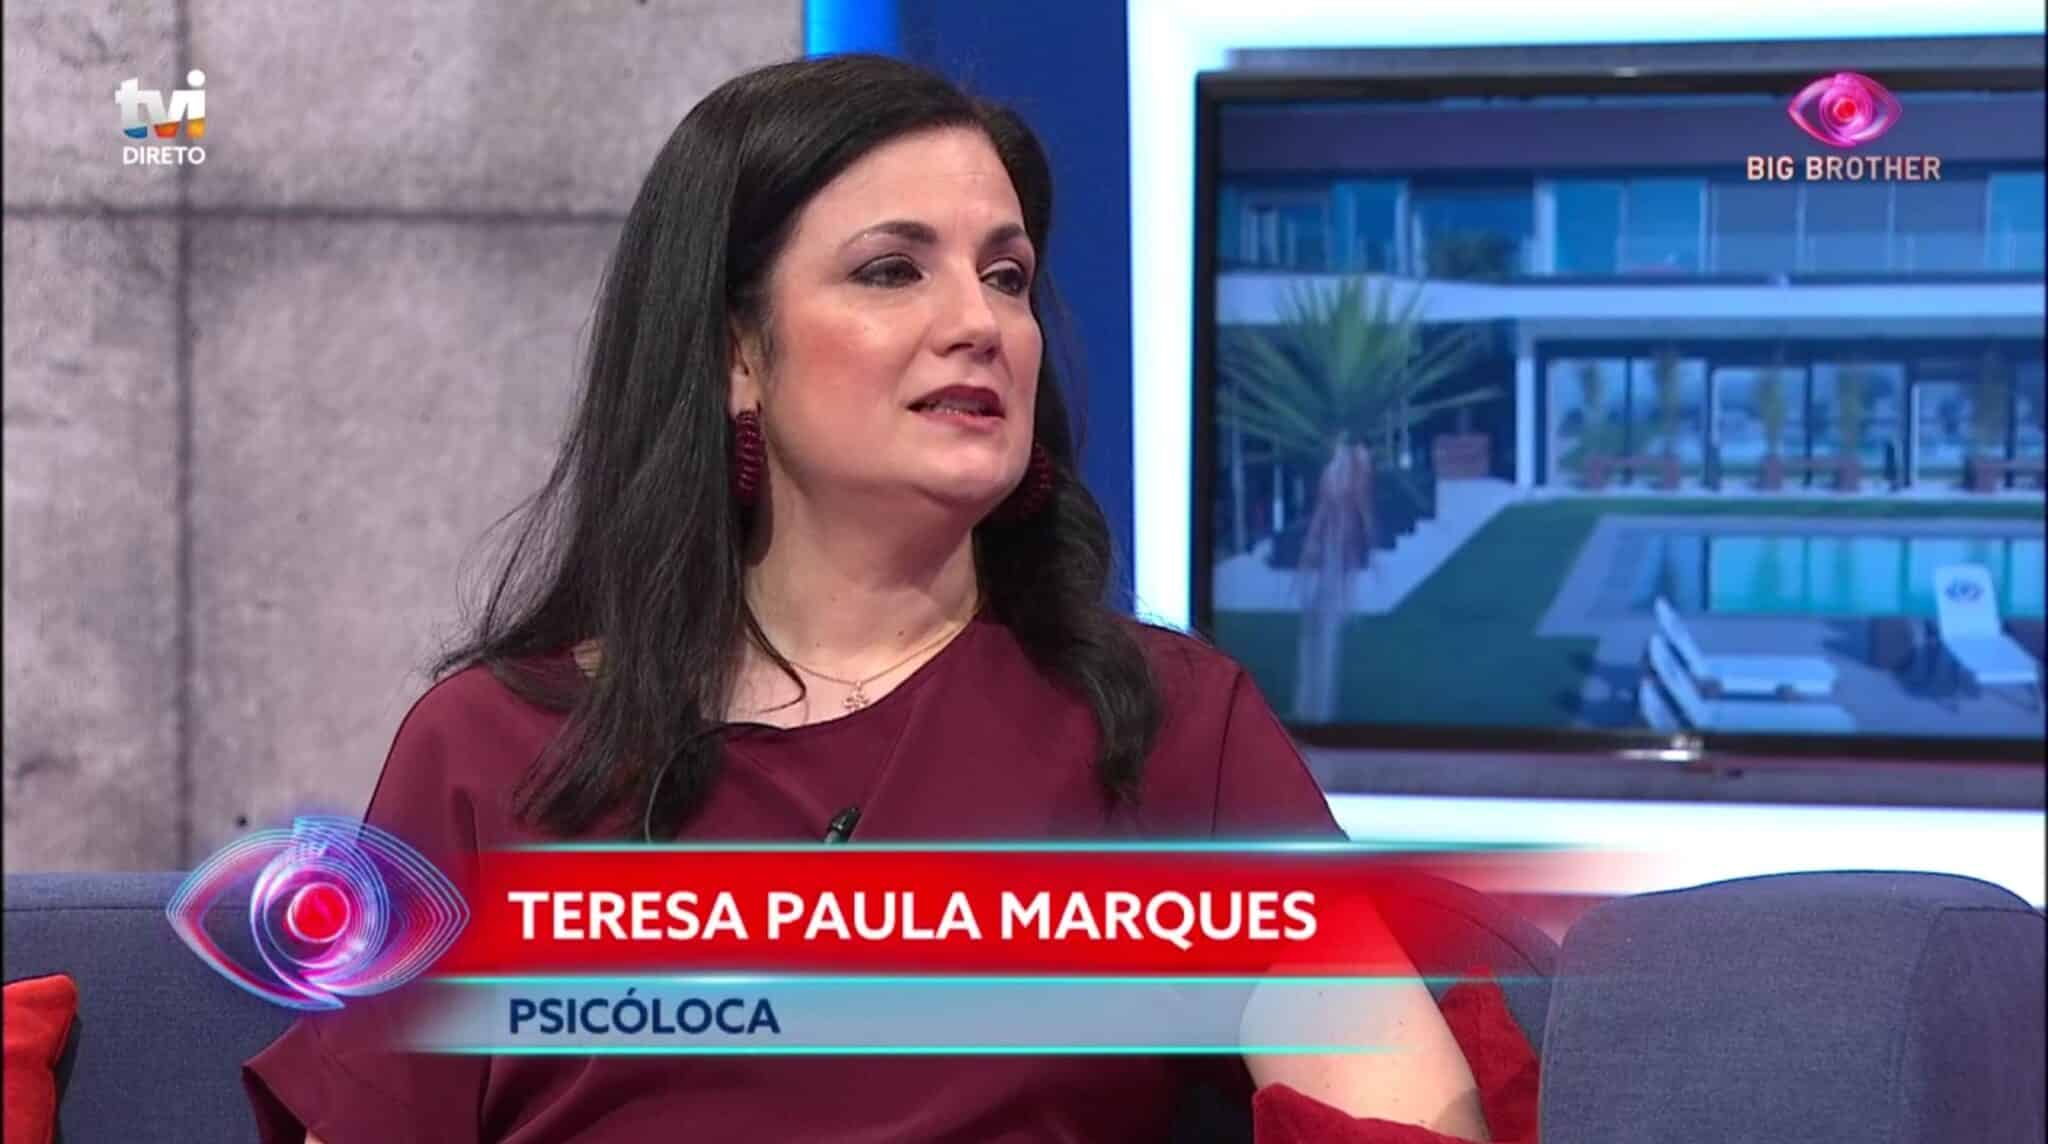 Teresa Paula Marques Big brother